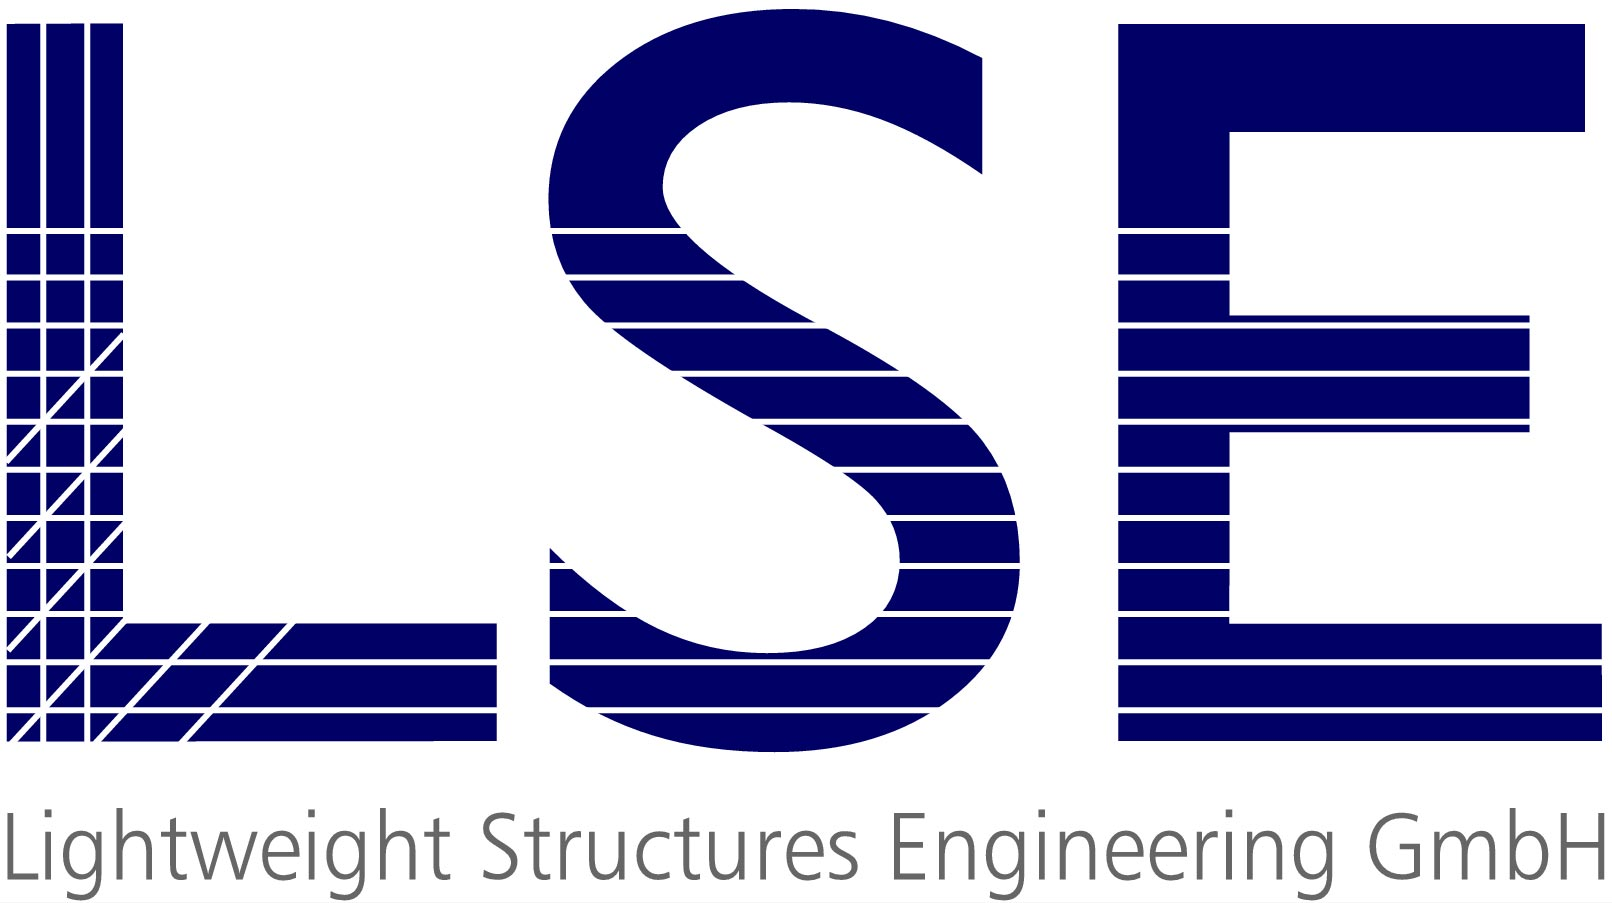 LSE Lightweight Structures Engineering GmbH